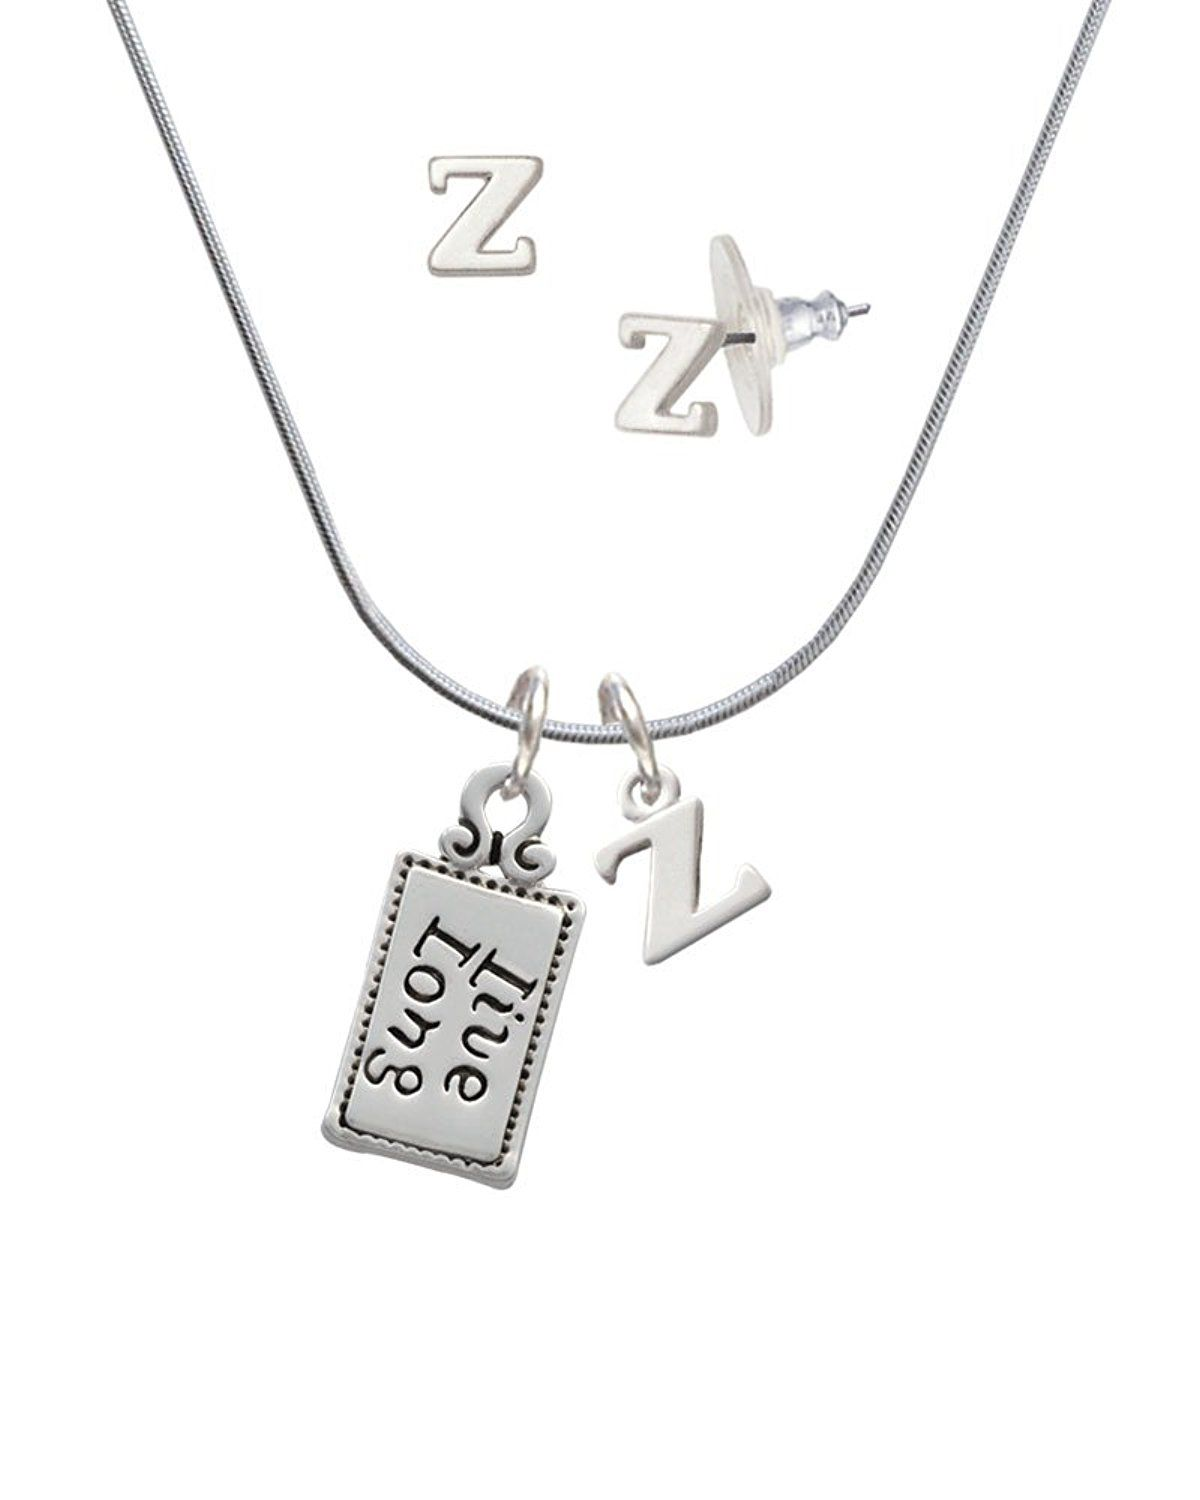 cf6afbfd4ea4 Silvertone Live Long - Z Initial Charm Necklace and Stud Earrings Jewelry  Set